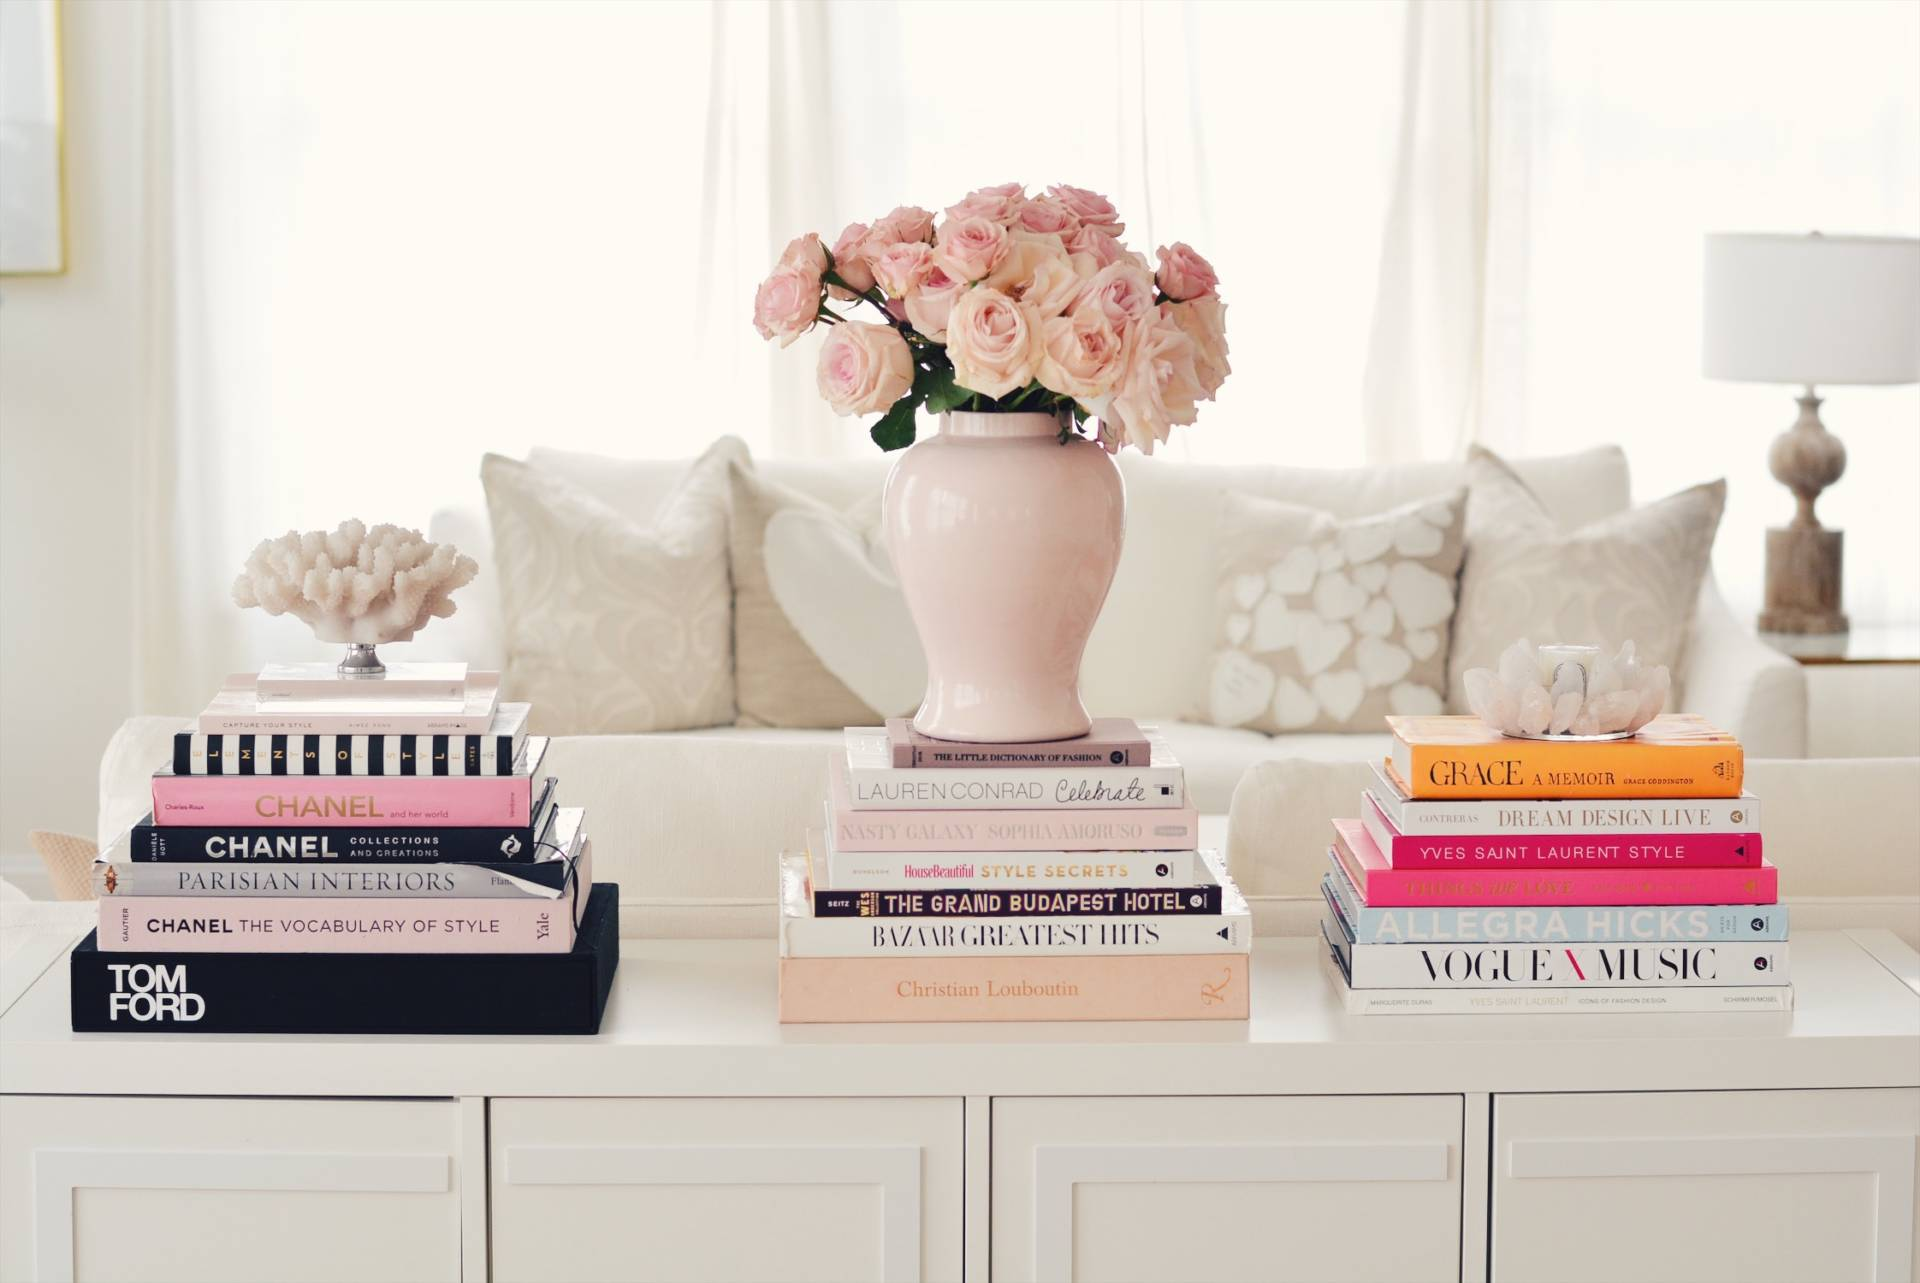 The 10 Best Fashion Coffee Table Books